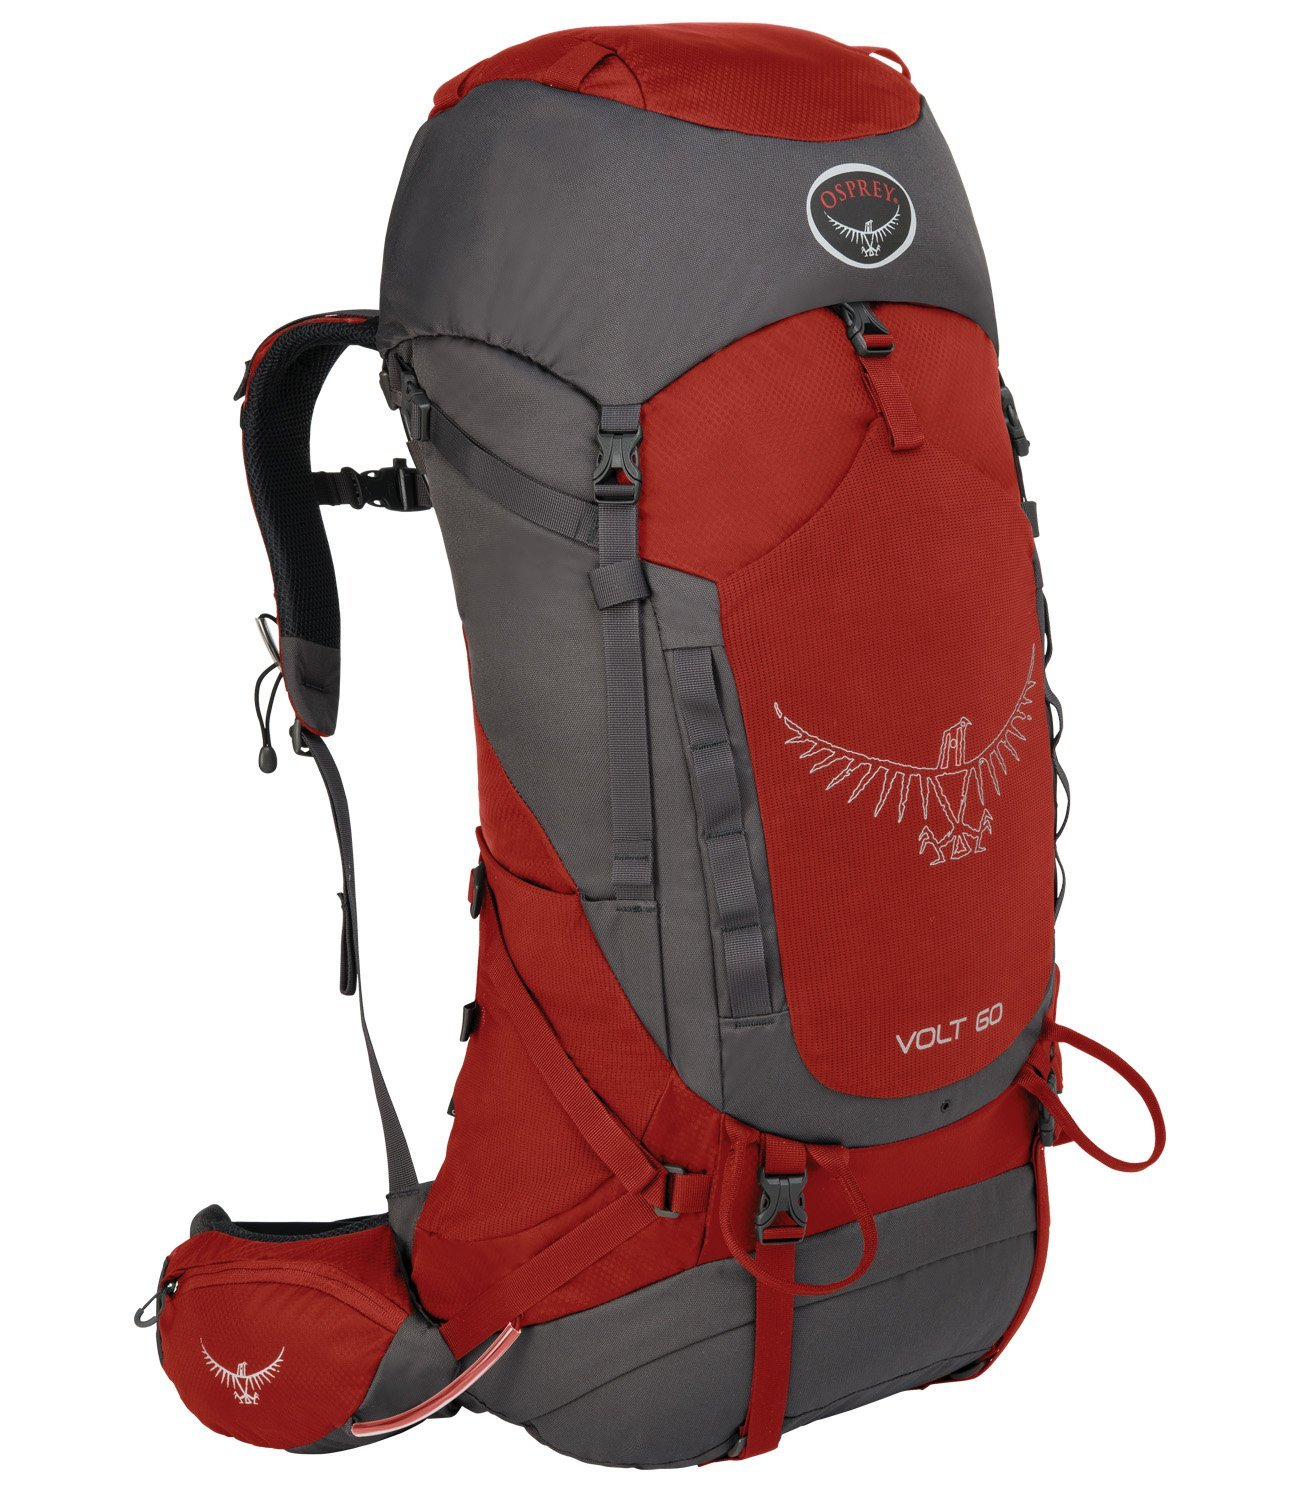 3. Osprey Packs Volt 60 Backpack